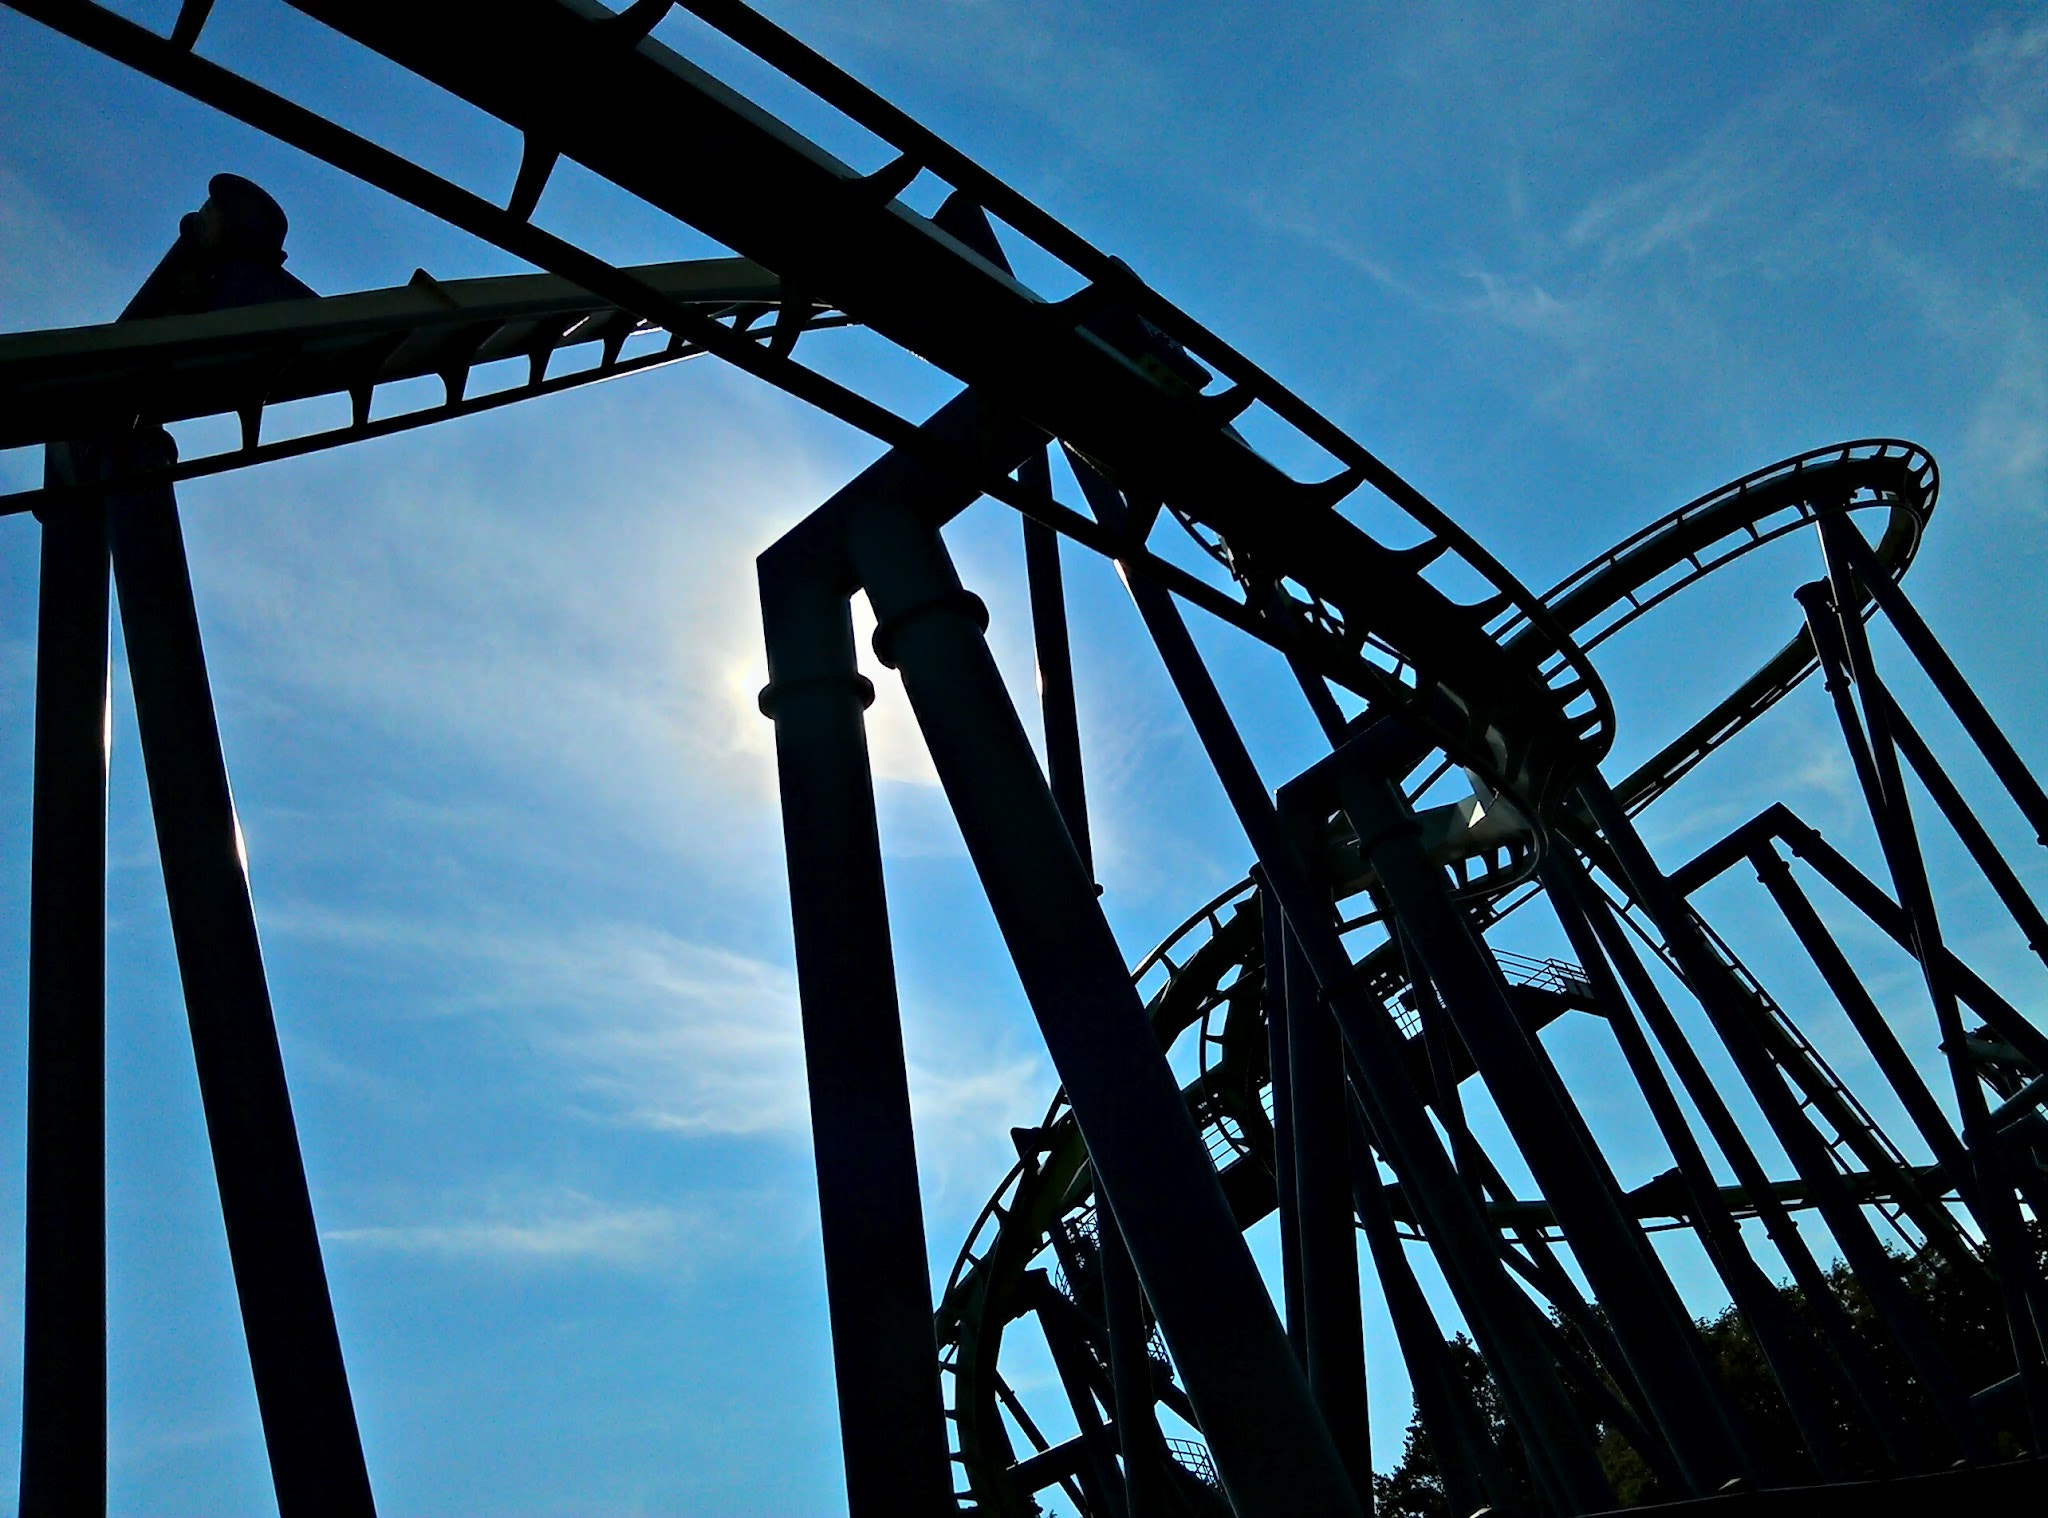 Photograph Coaster by Tim Strempfer on 500px